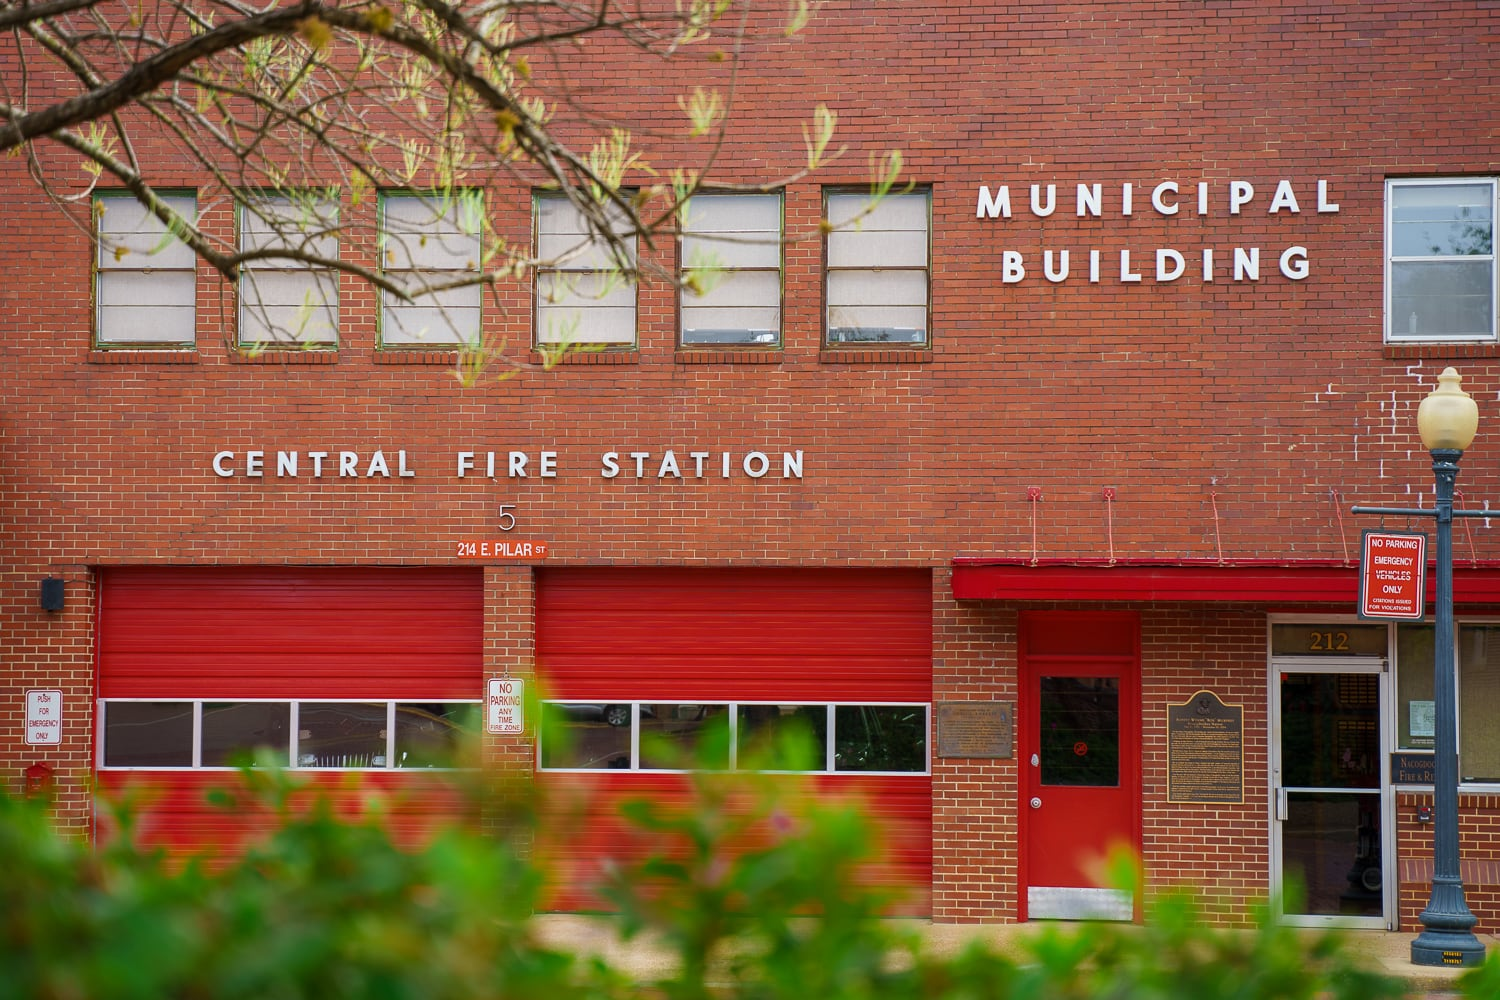 Central Fire